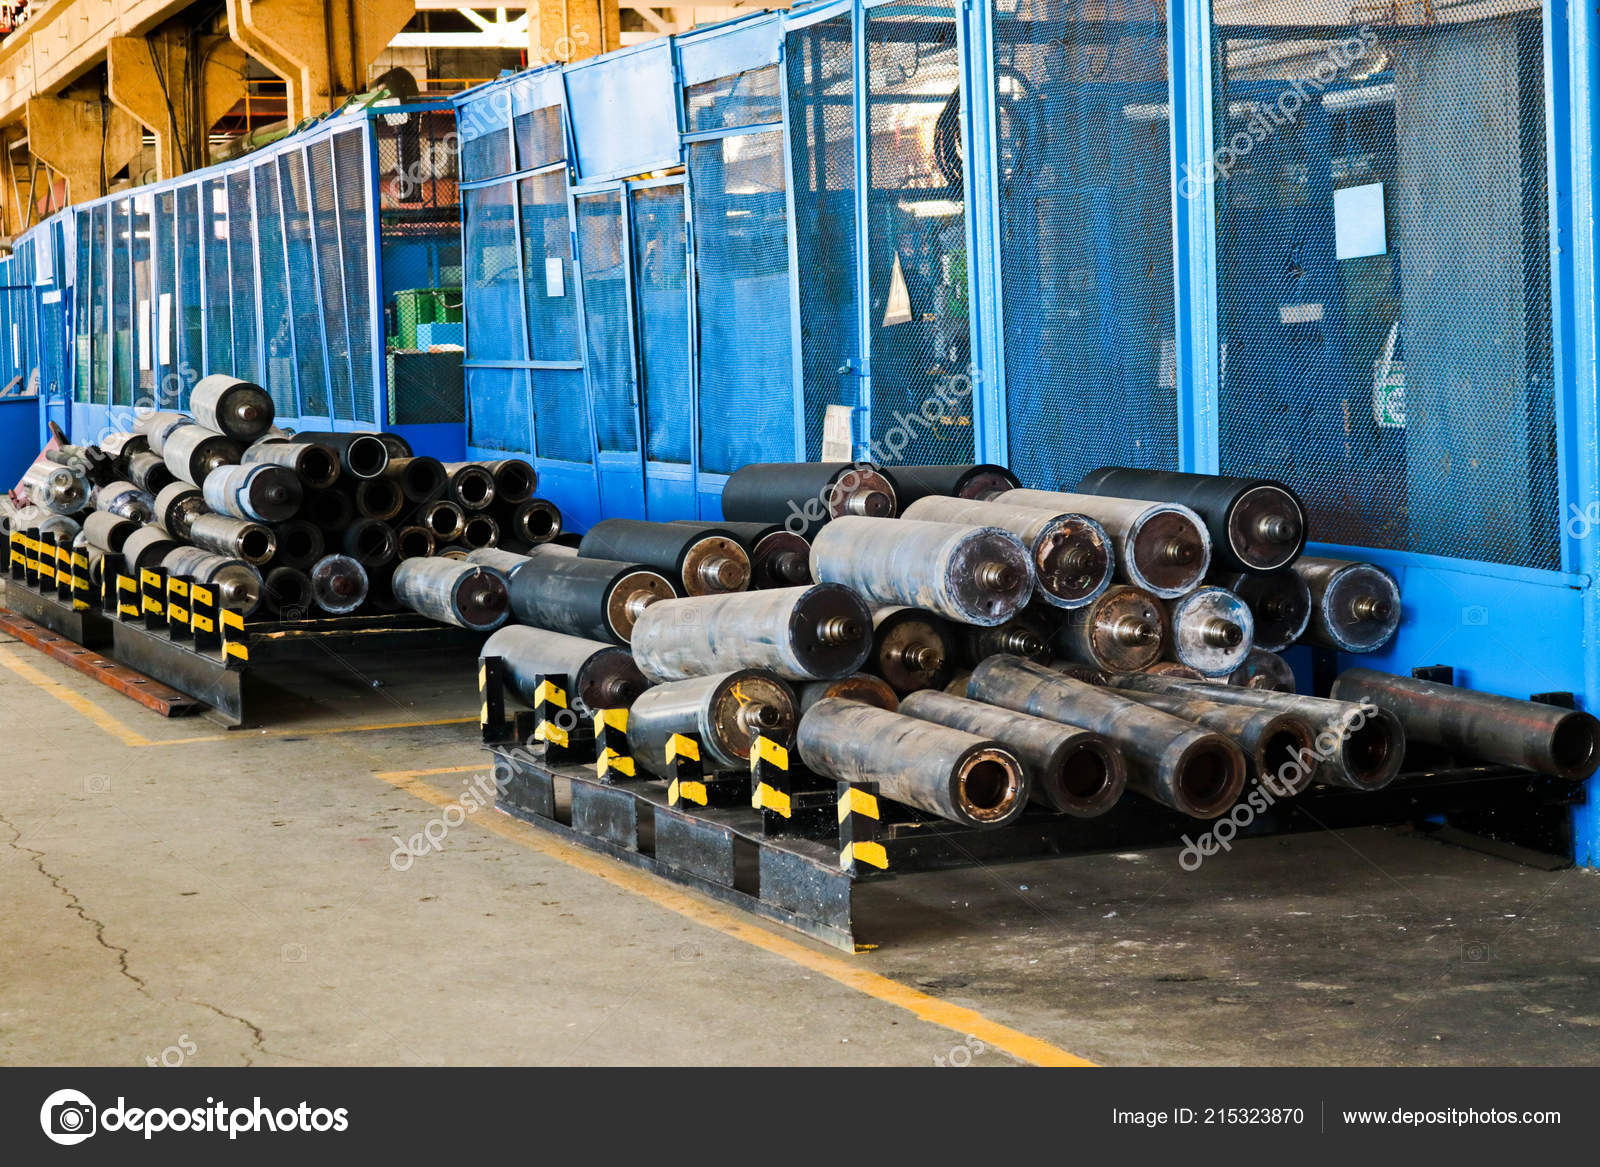 Warehouse, storage of iron rollers, pipes, spare parts at an